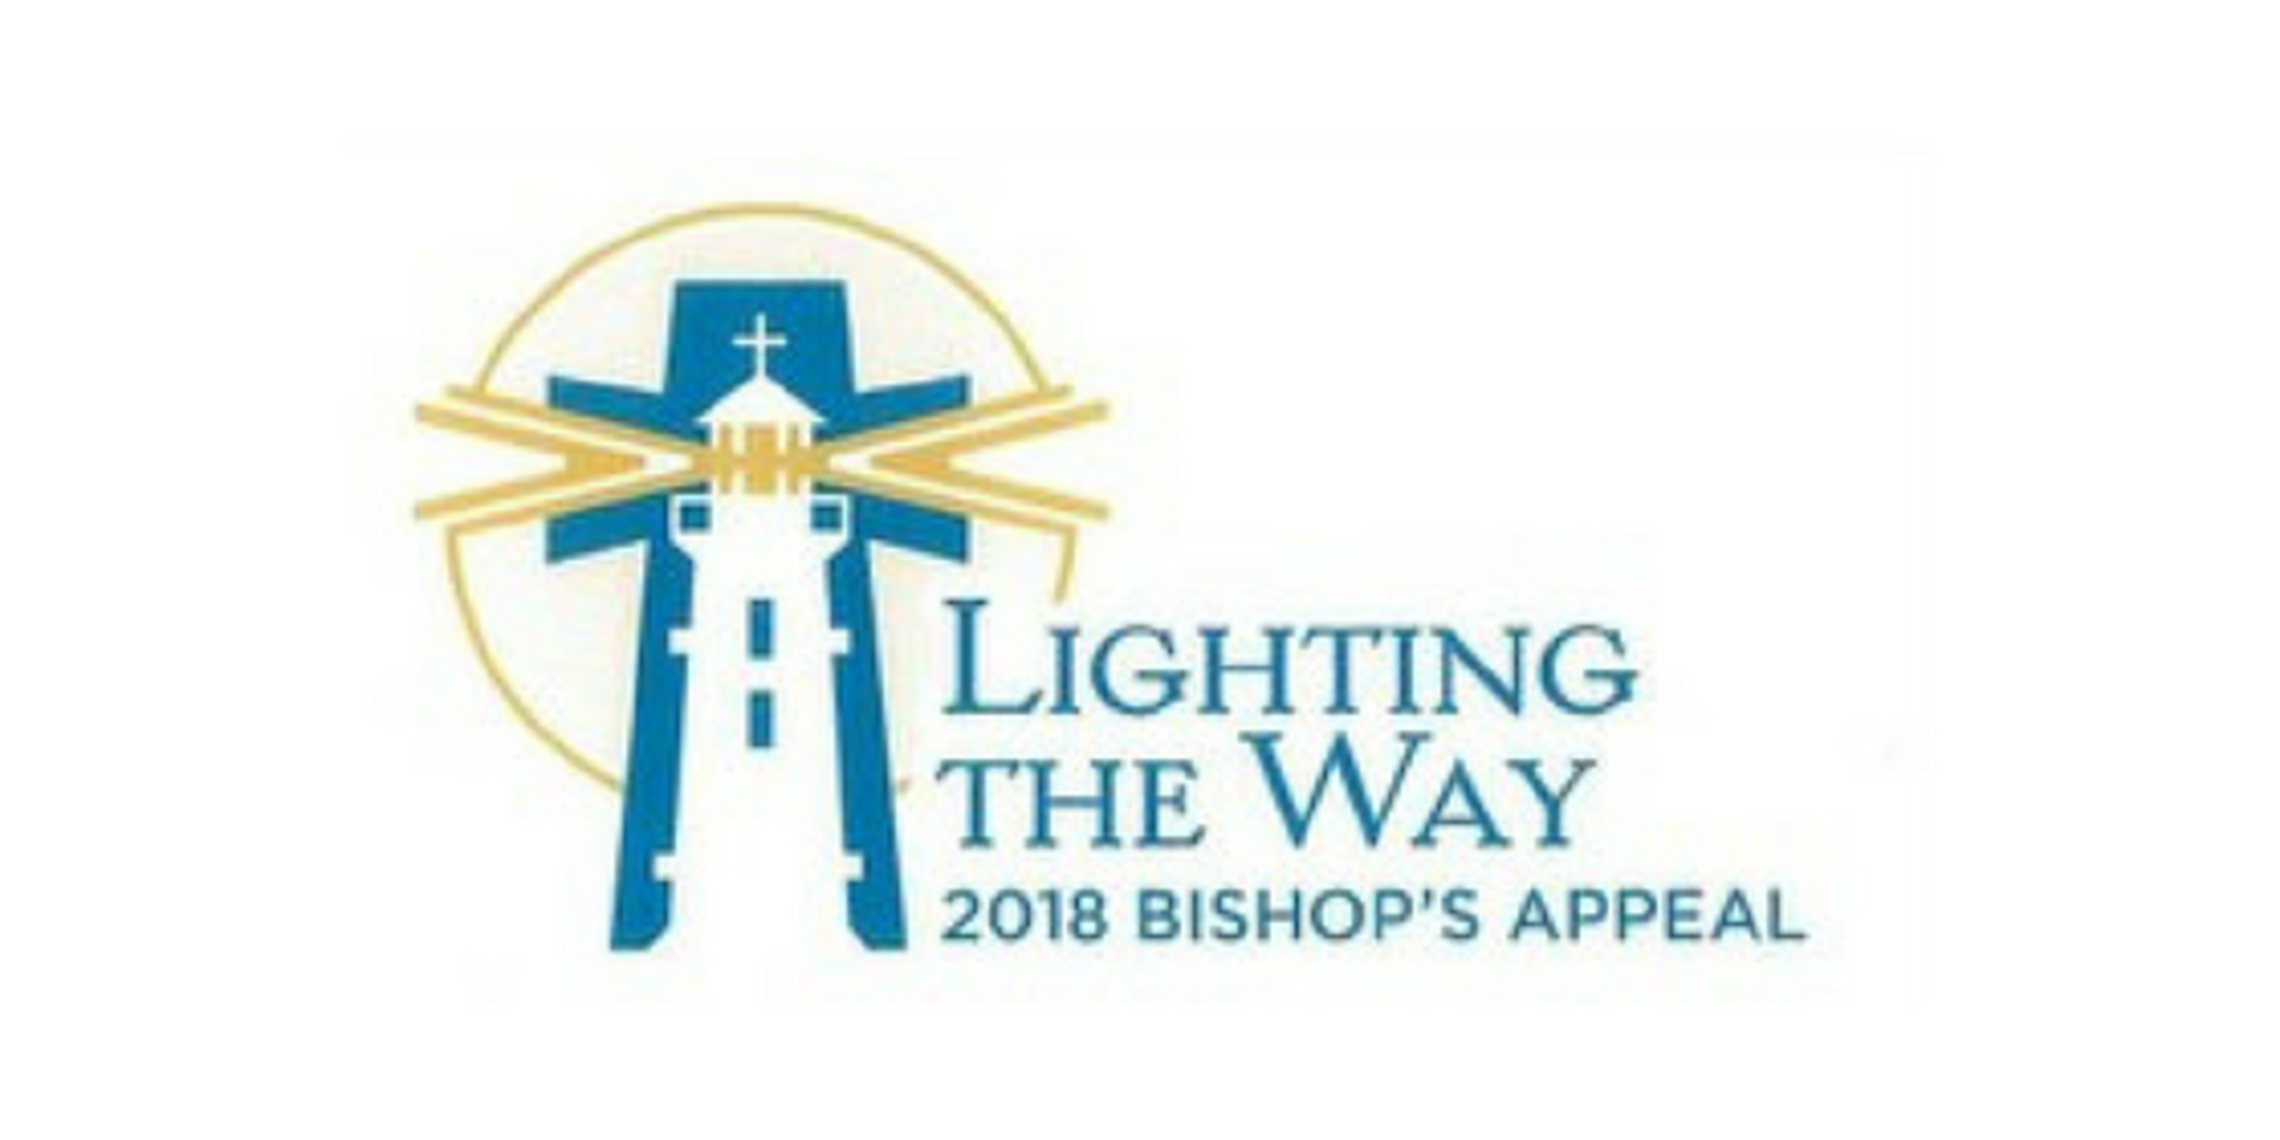 Lighting the Way Bishop's Appeal